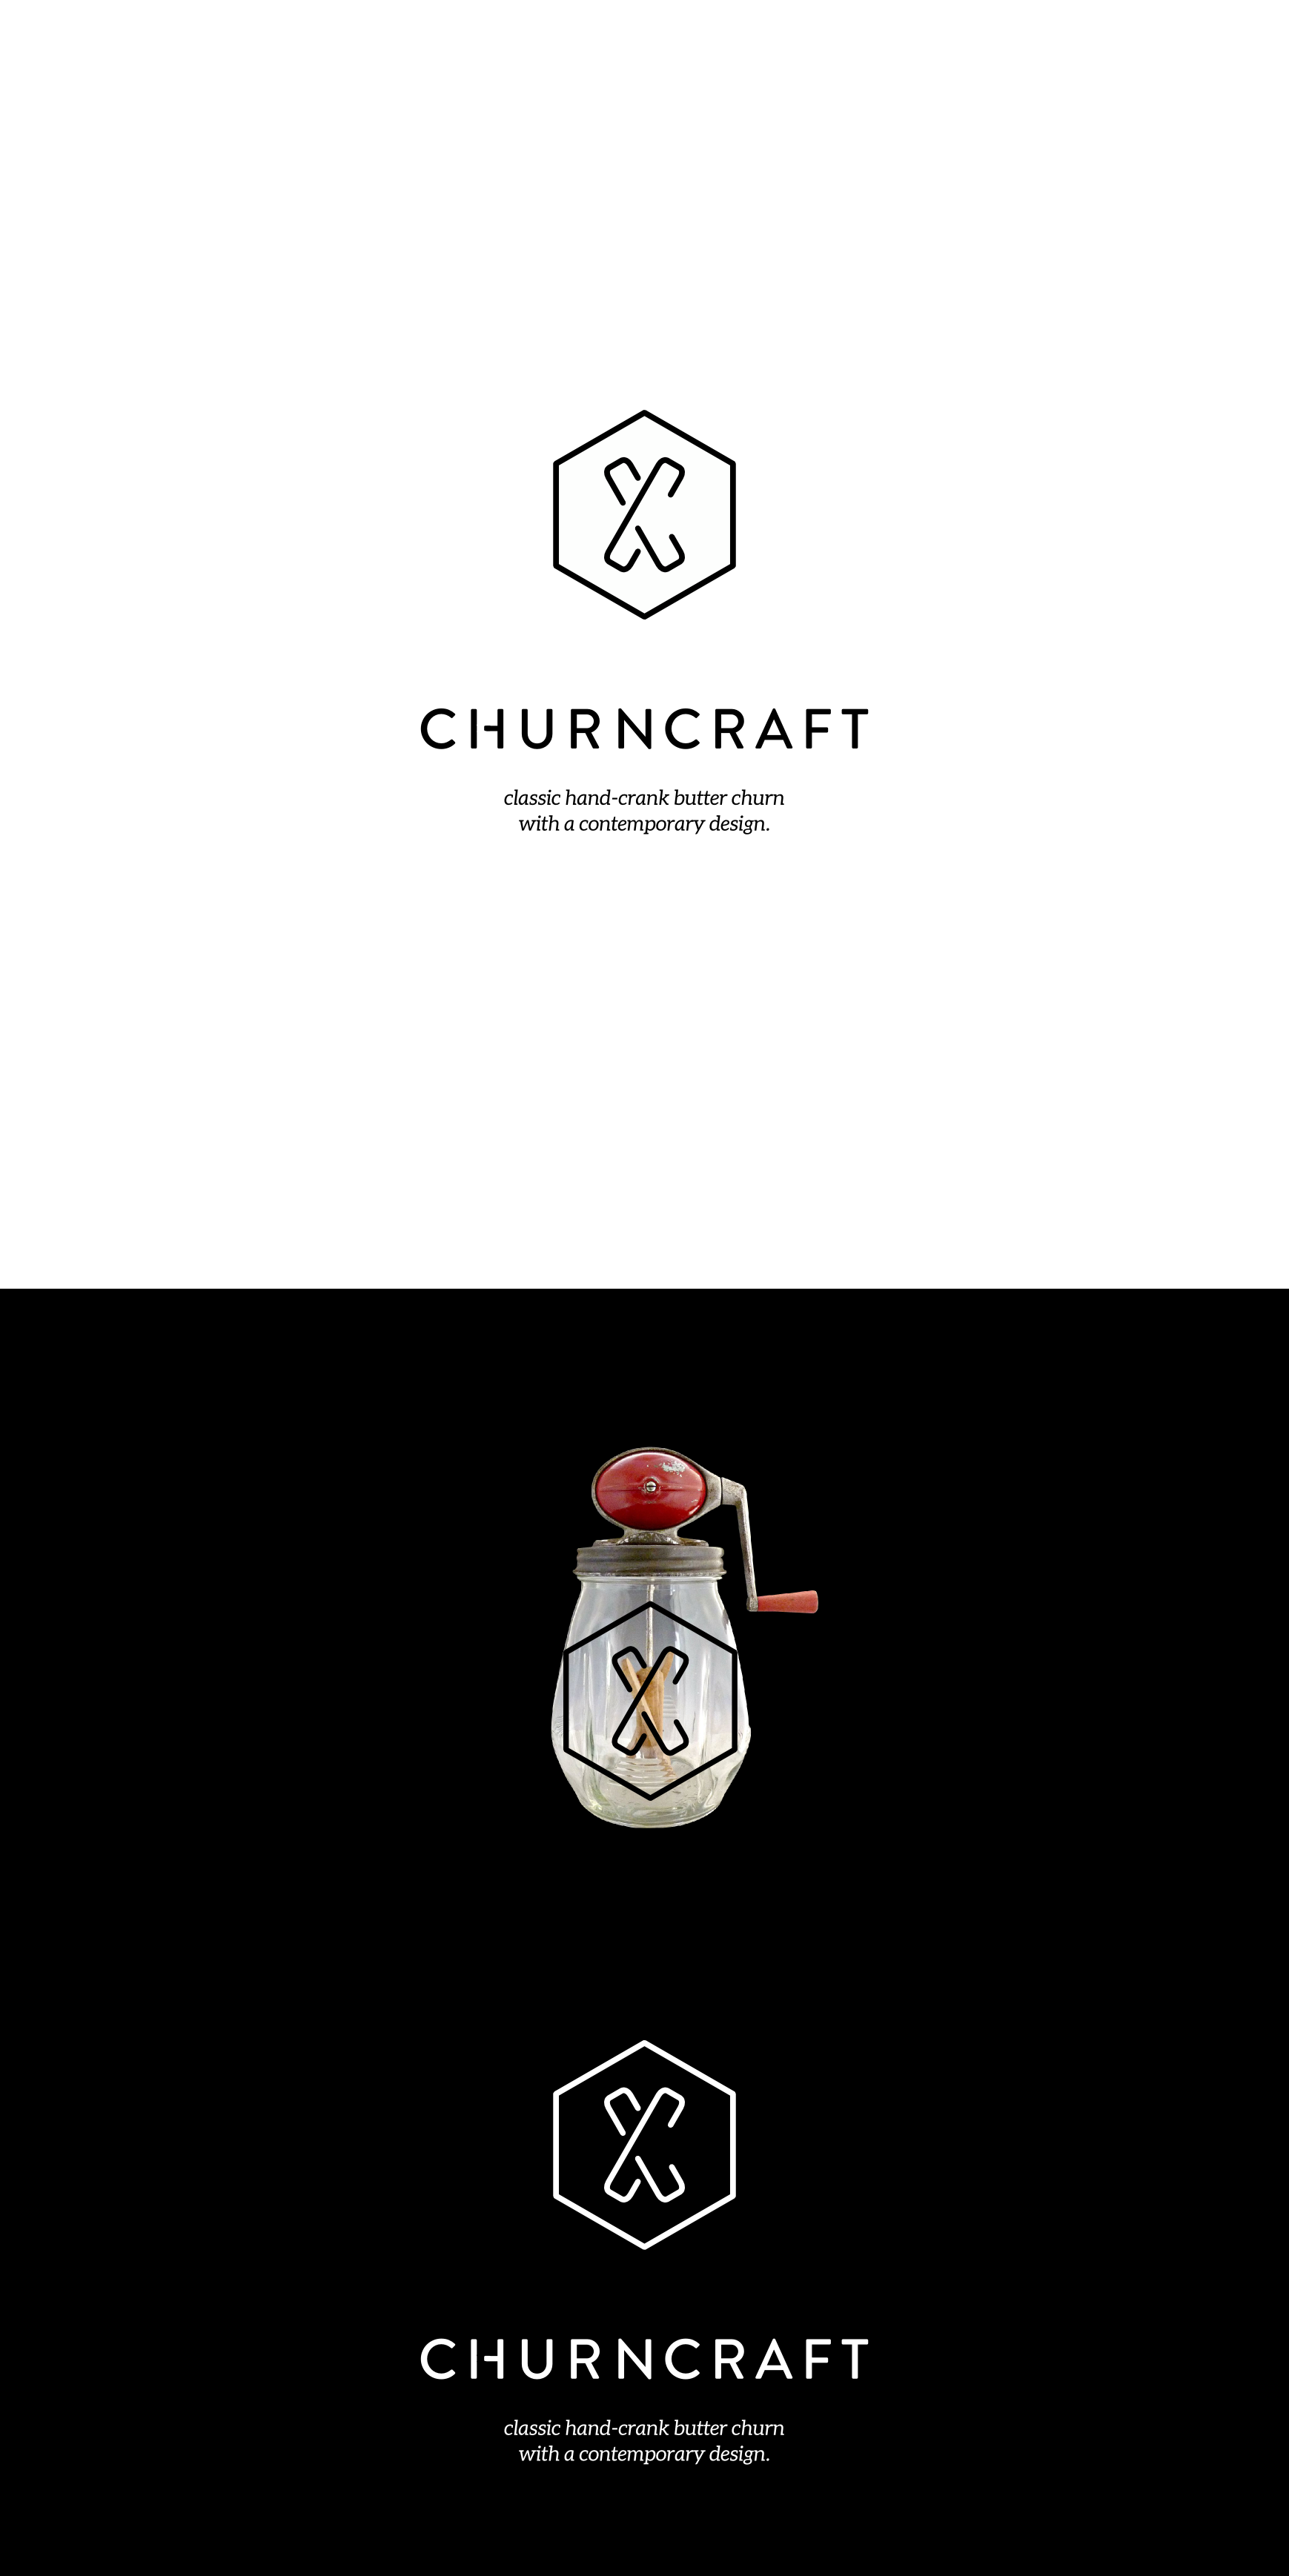 Create a logo for a high-end artisanal kitchen device!